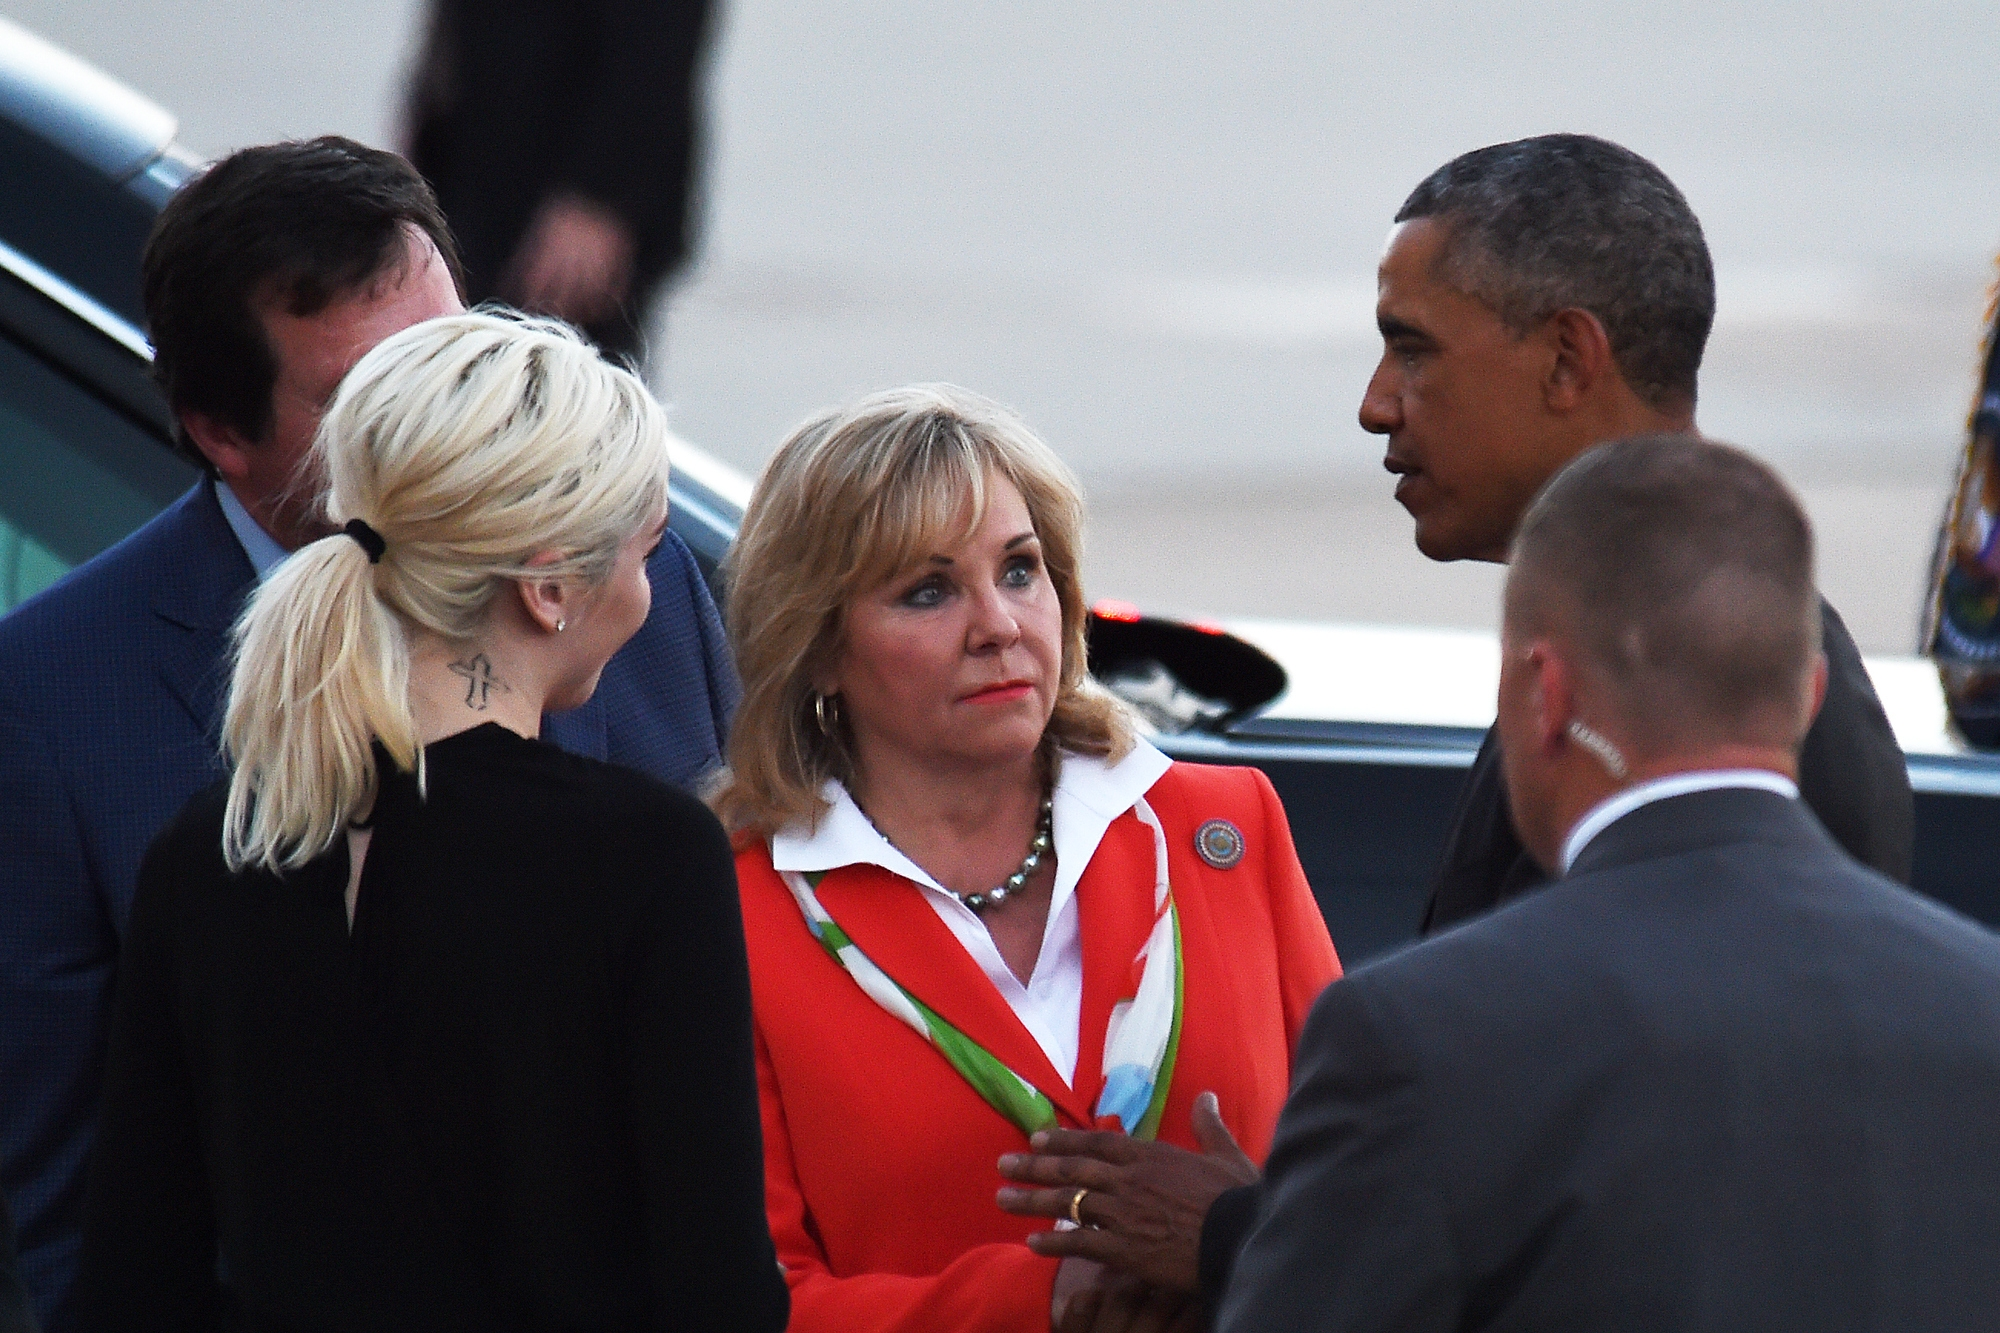 President Barack Obama, right, talks with Oklahoma Gov. Mary Fallin, center, after arriving at Tinker Air Force Base, Wednesday, July 15, 2015, in Oklahoma City, Okla. Photo: AP